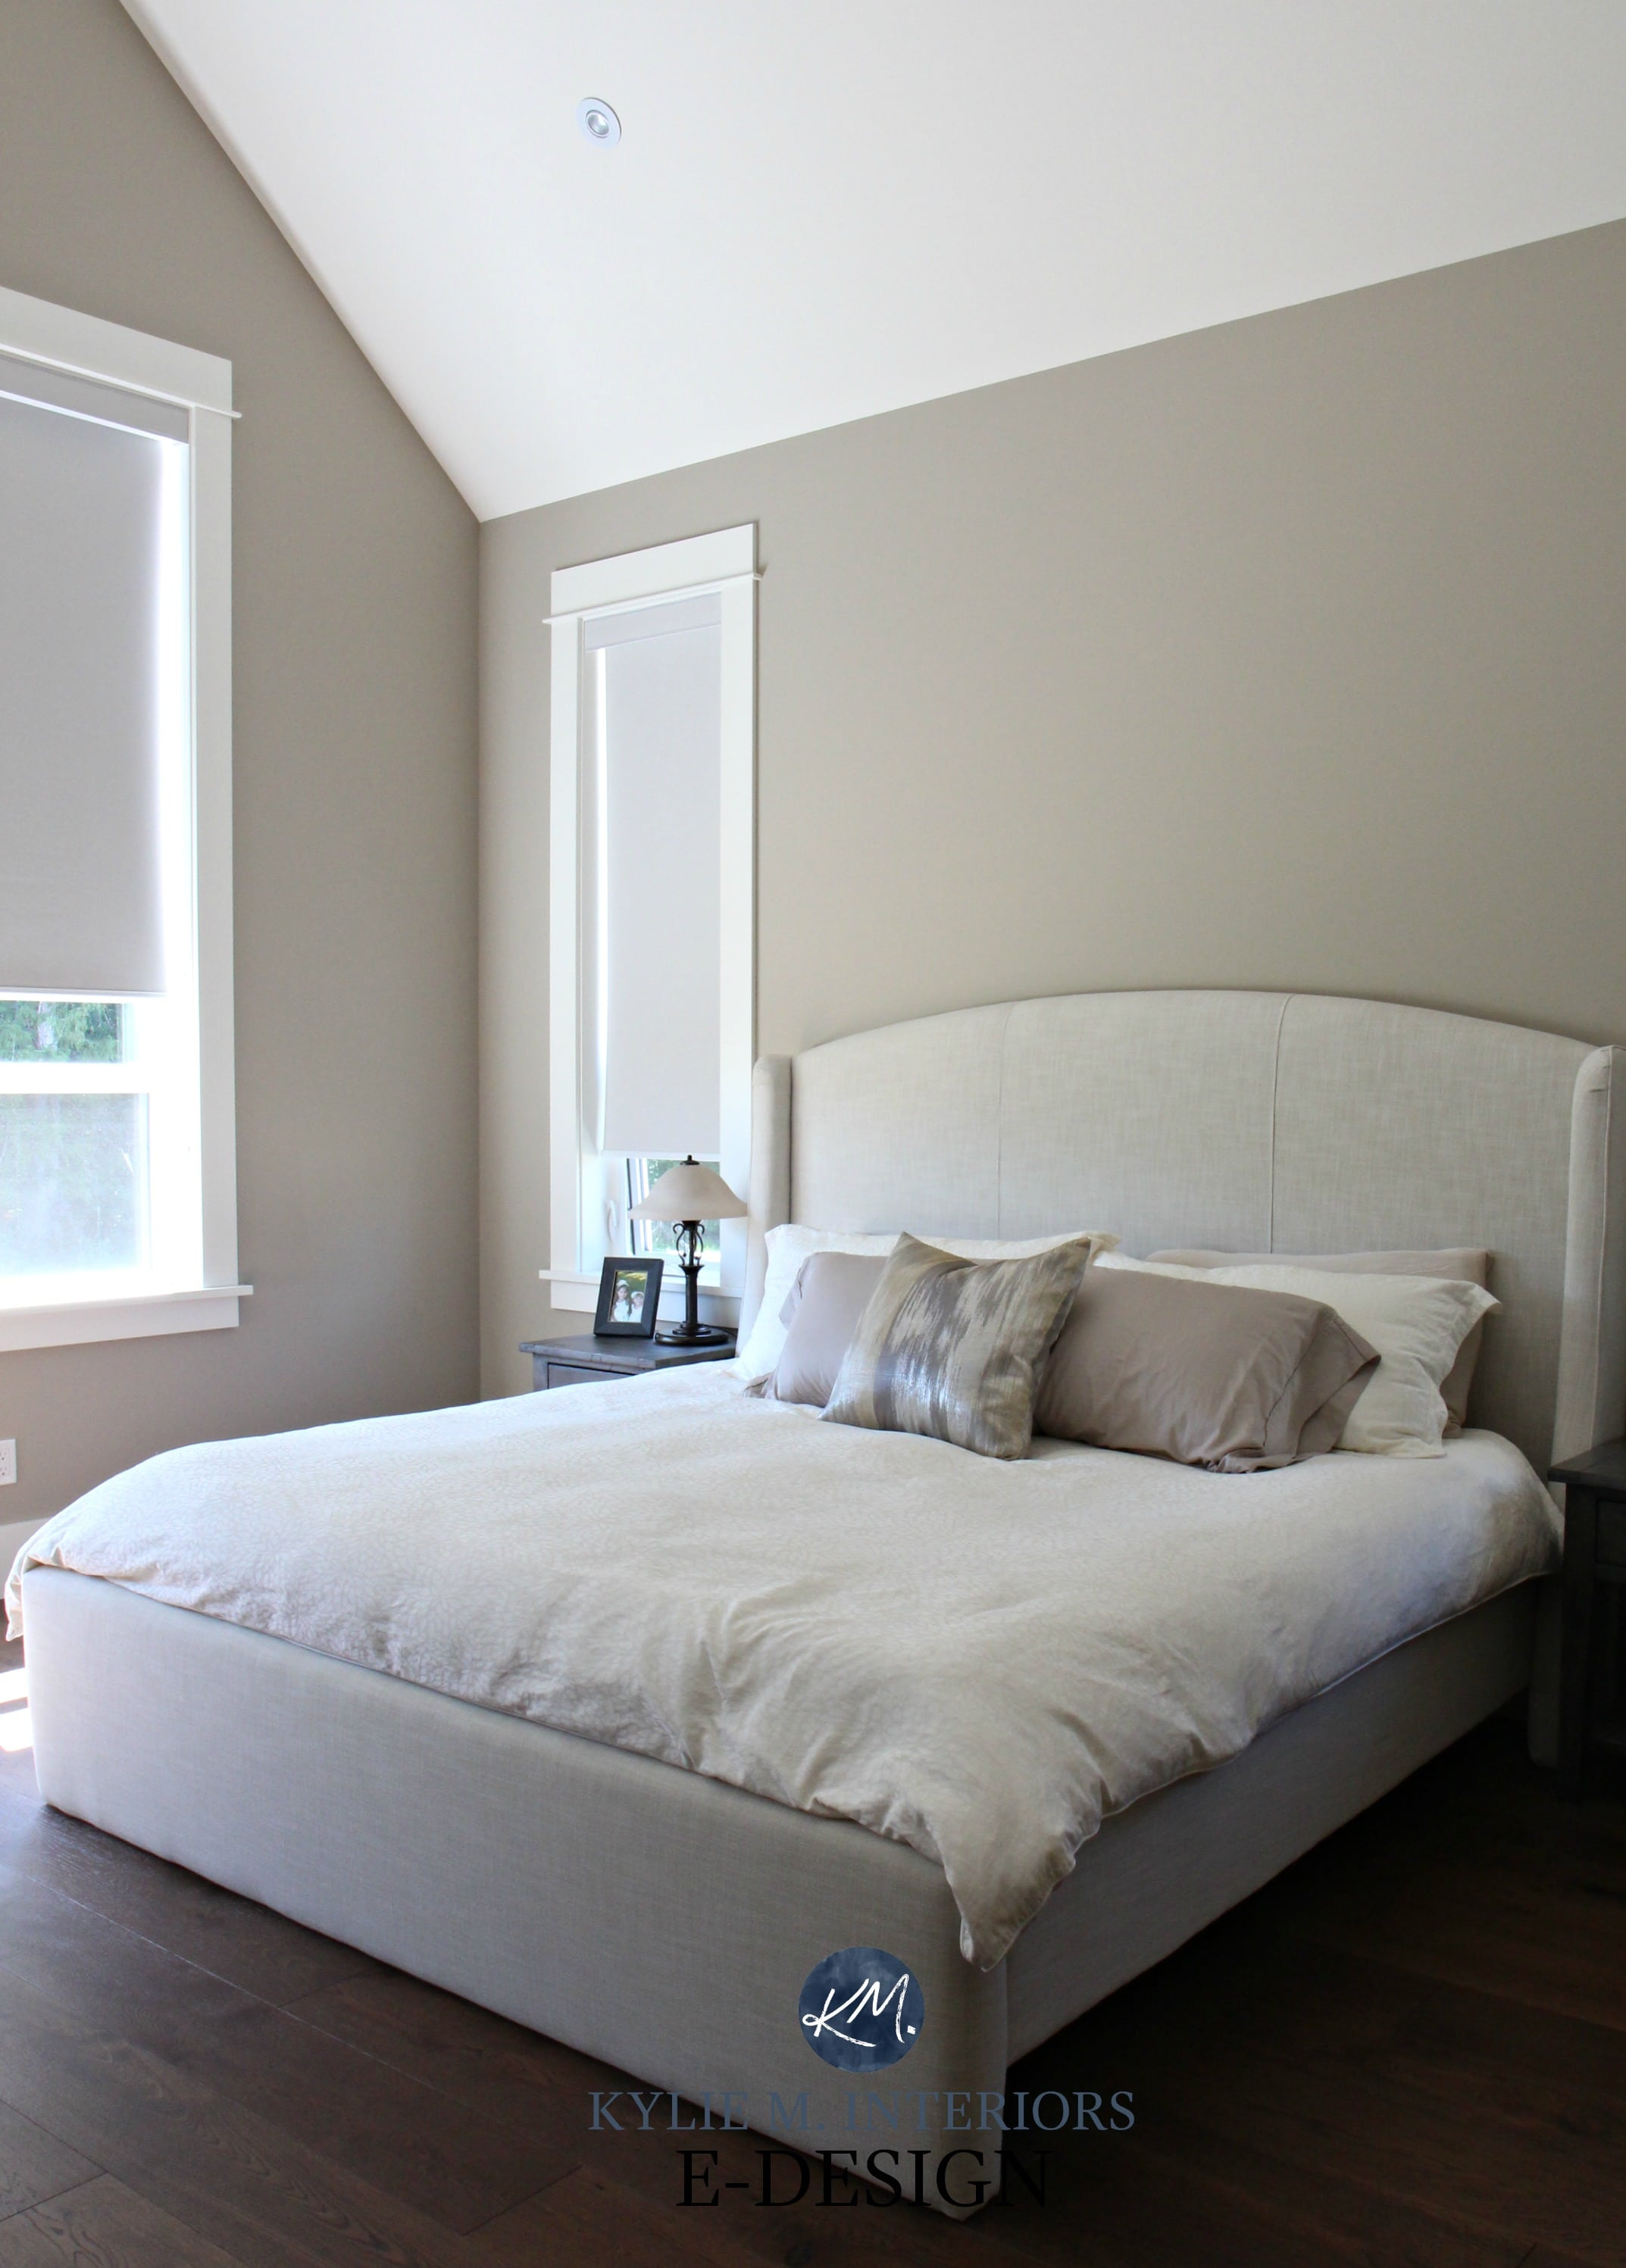 Taupe Paint Colors Living Room: Sherwin Williams Balanced Beige, Mushroom Paint Color